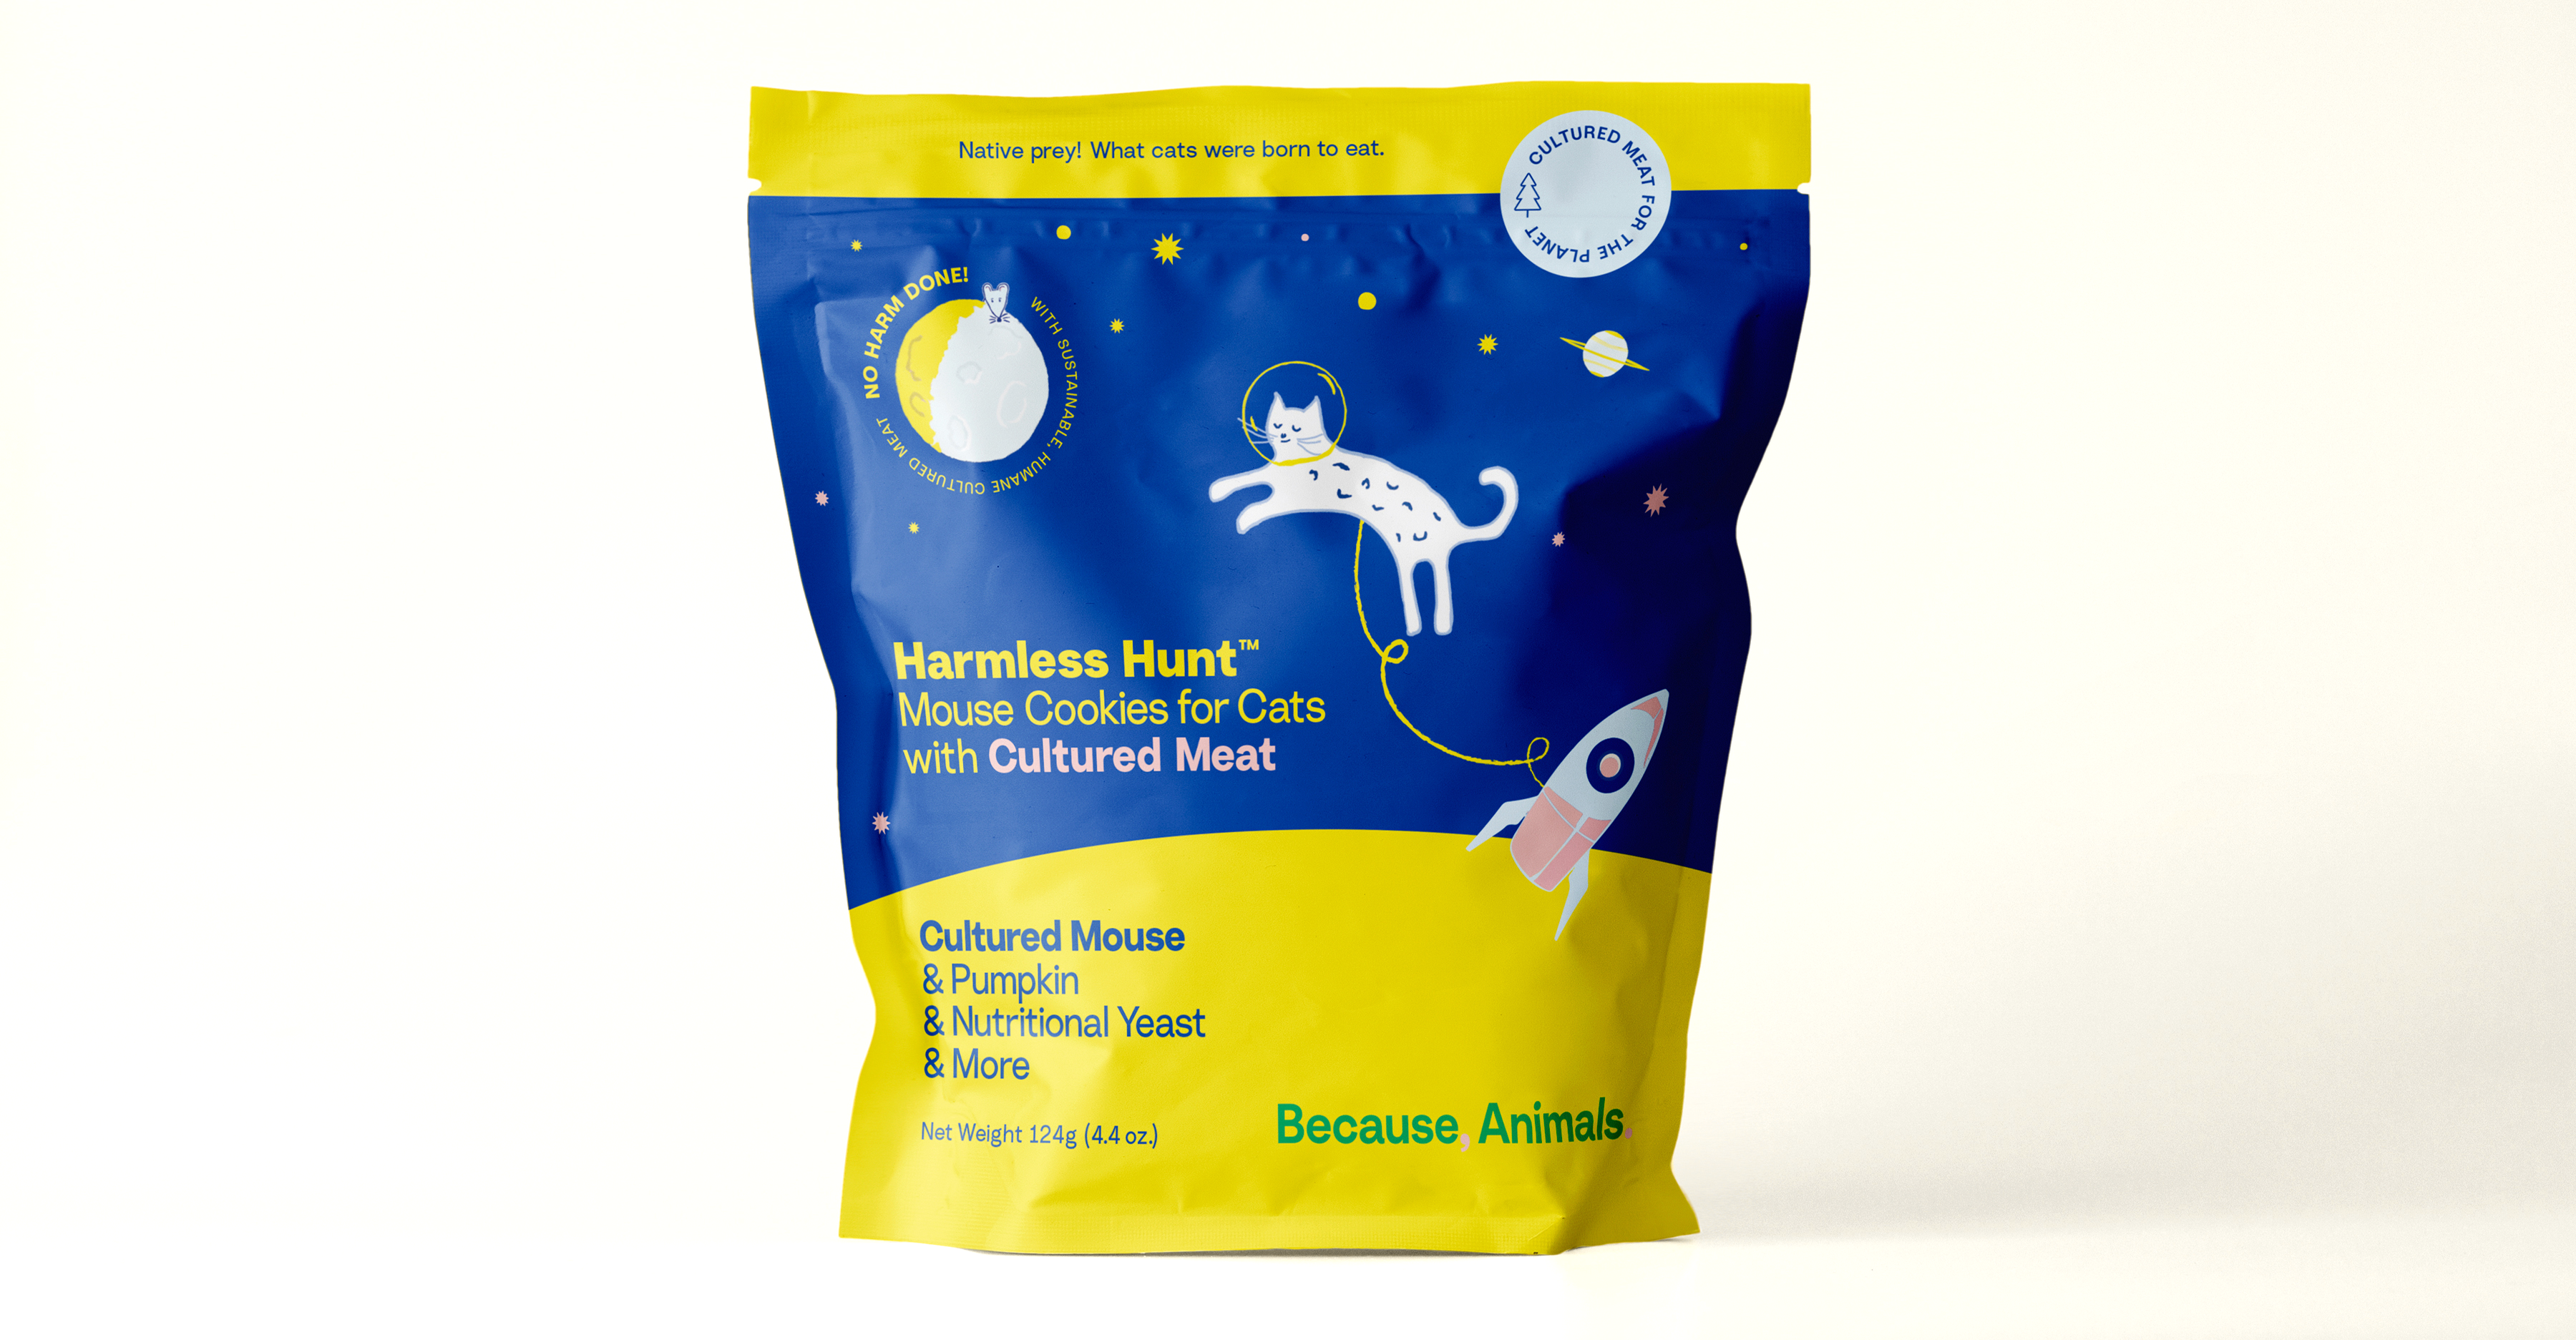 A bag of Harmless Hunt Mouse Cookies for Cats